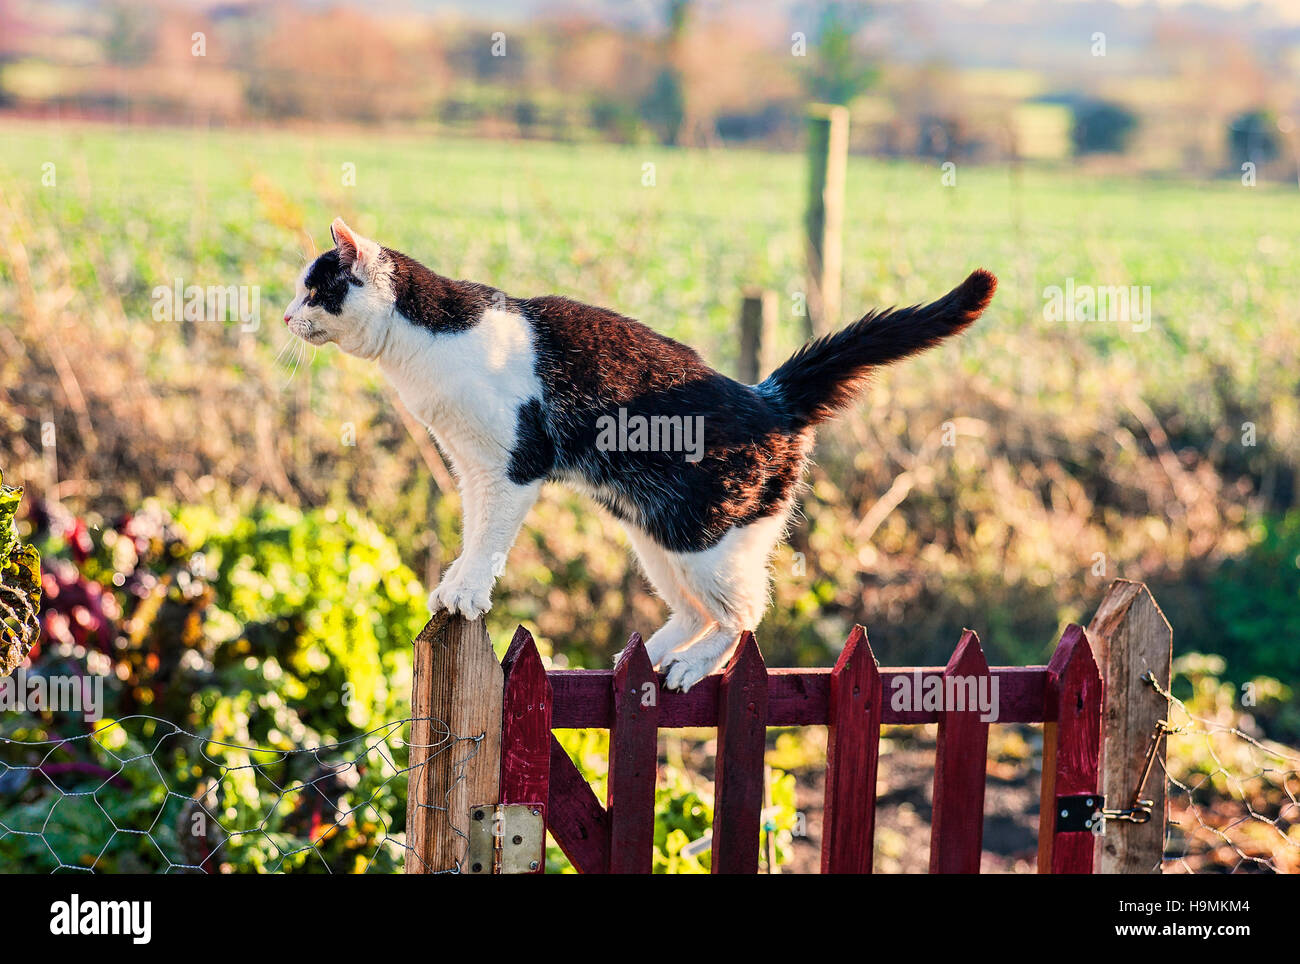 Black and white cat on a garden gate hunting in a country garden - Stock Image